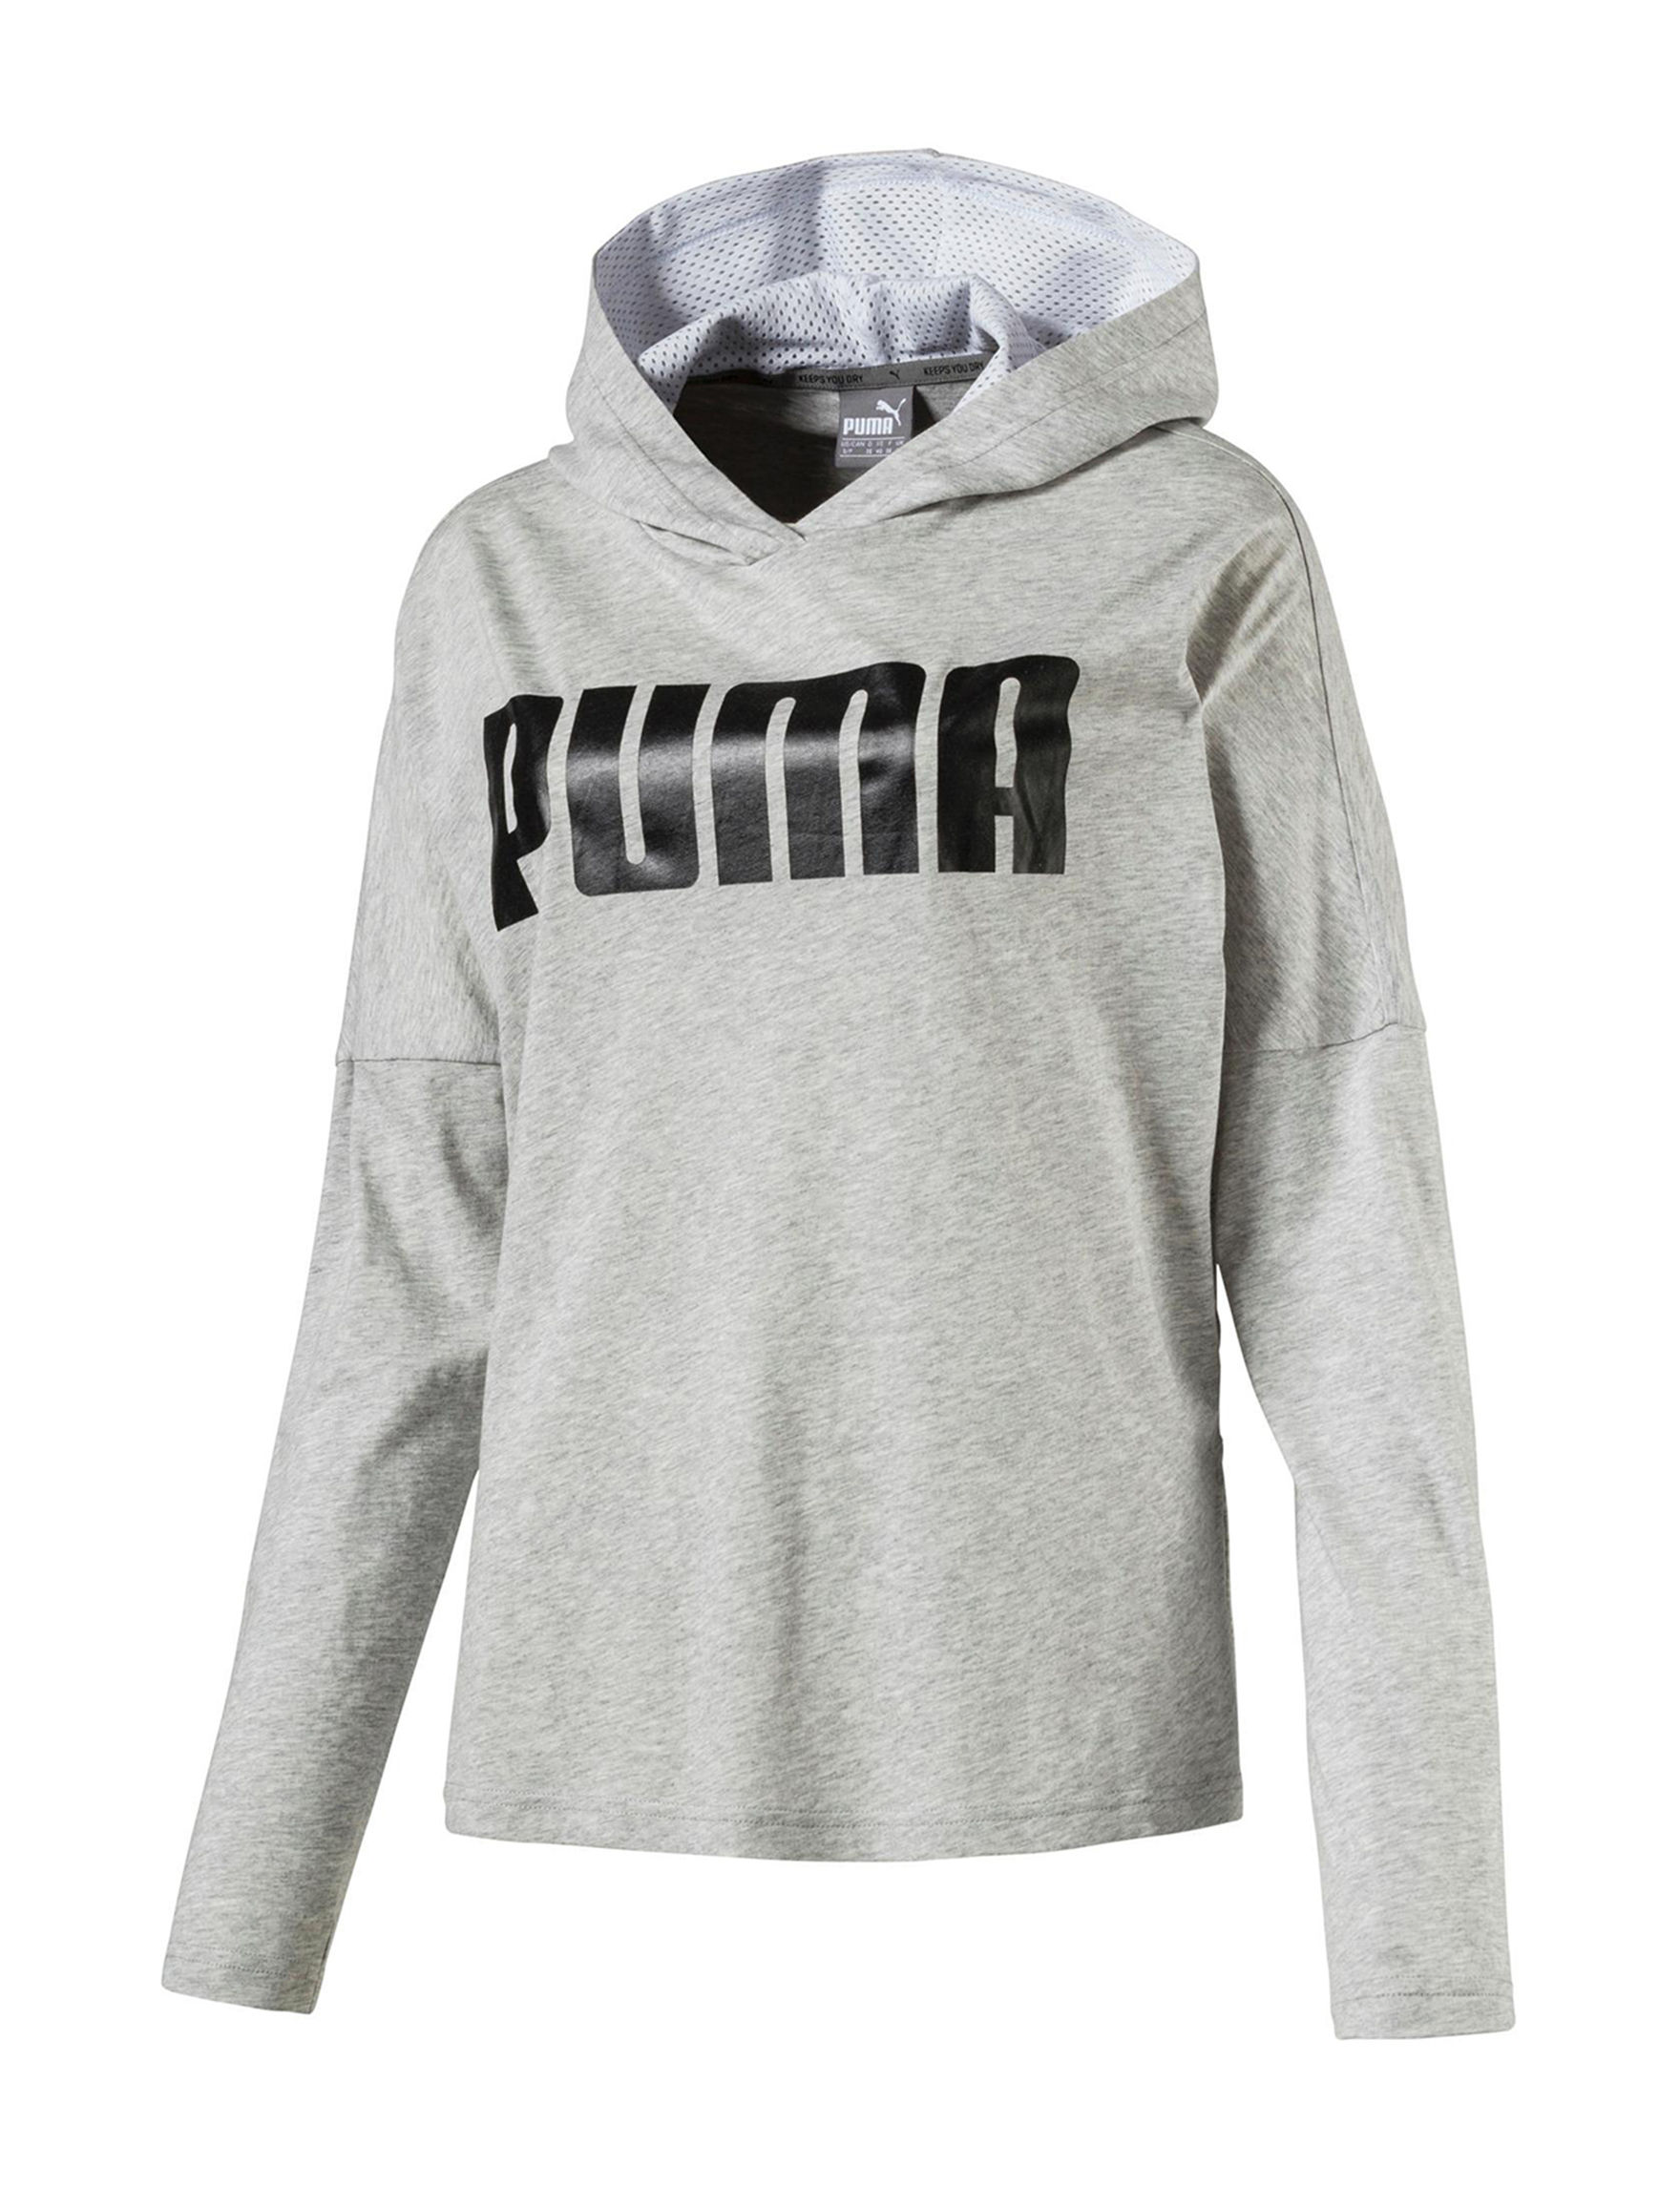 Puma Grey Tees & Tanks